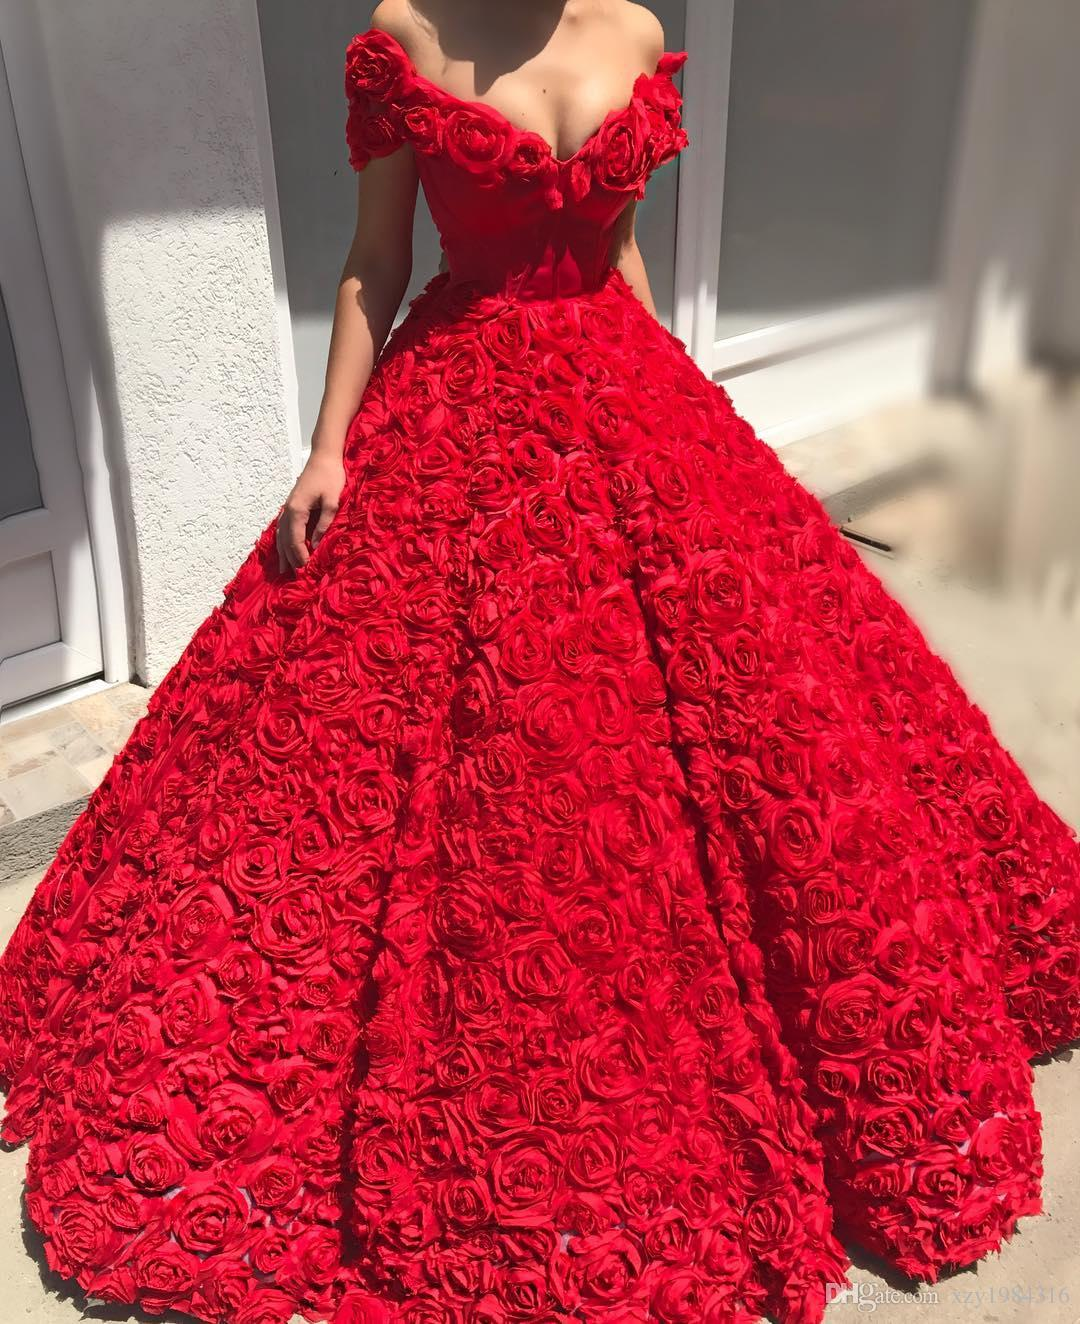 Gorgeous 3D Floral Prom Dresses Sexy Off Shoulder Floor Length Party Dresses Celebrity Gowns Charming Saudi Arabia Princess Evening Gown